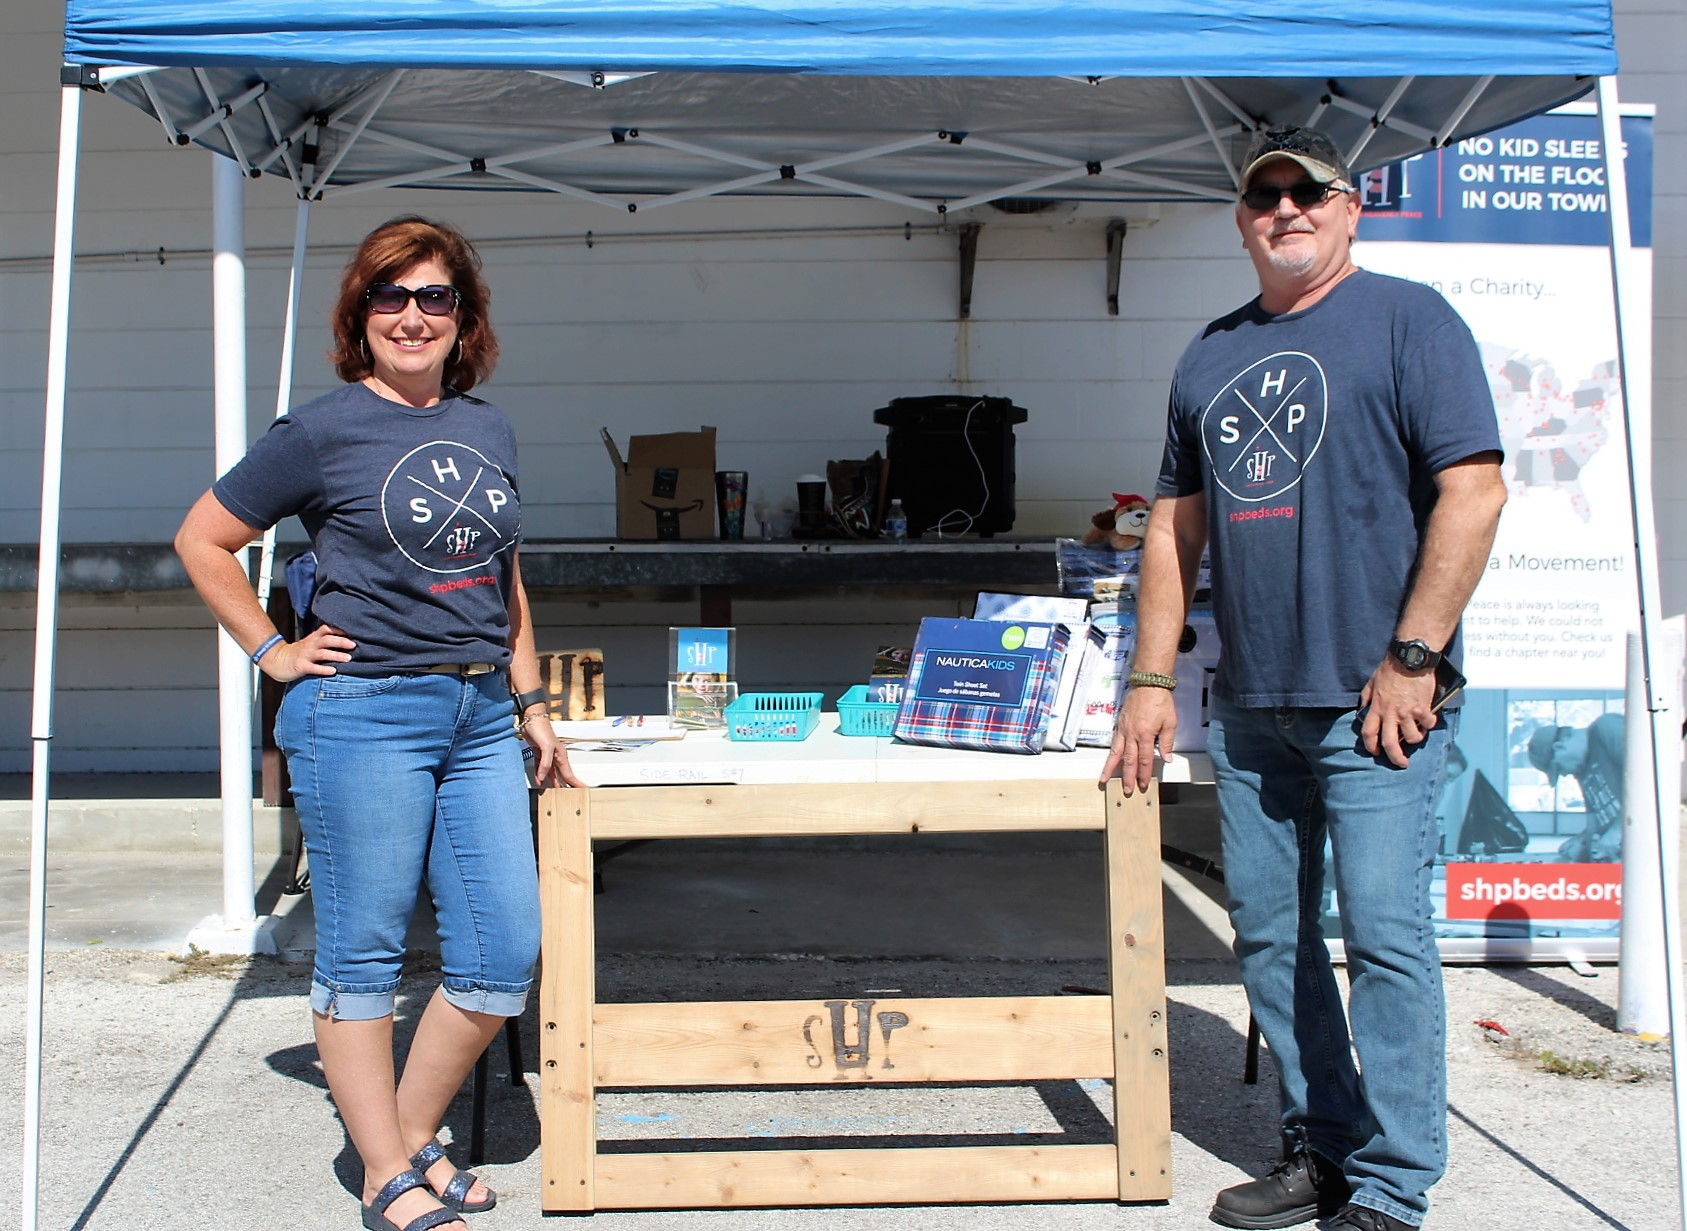 Two people in blue shirts stand on either side of a table outside in the sun.